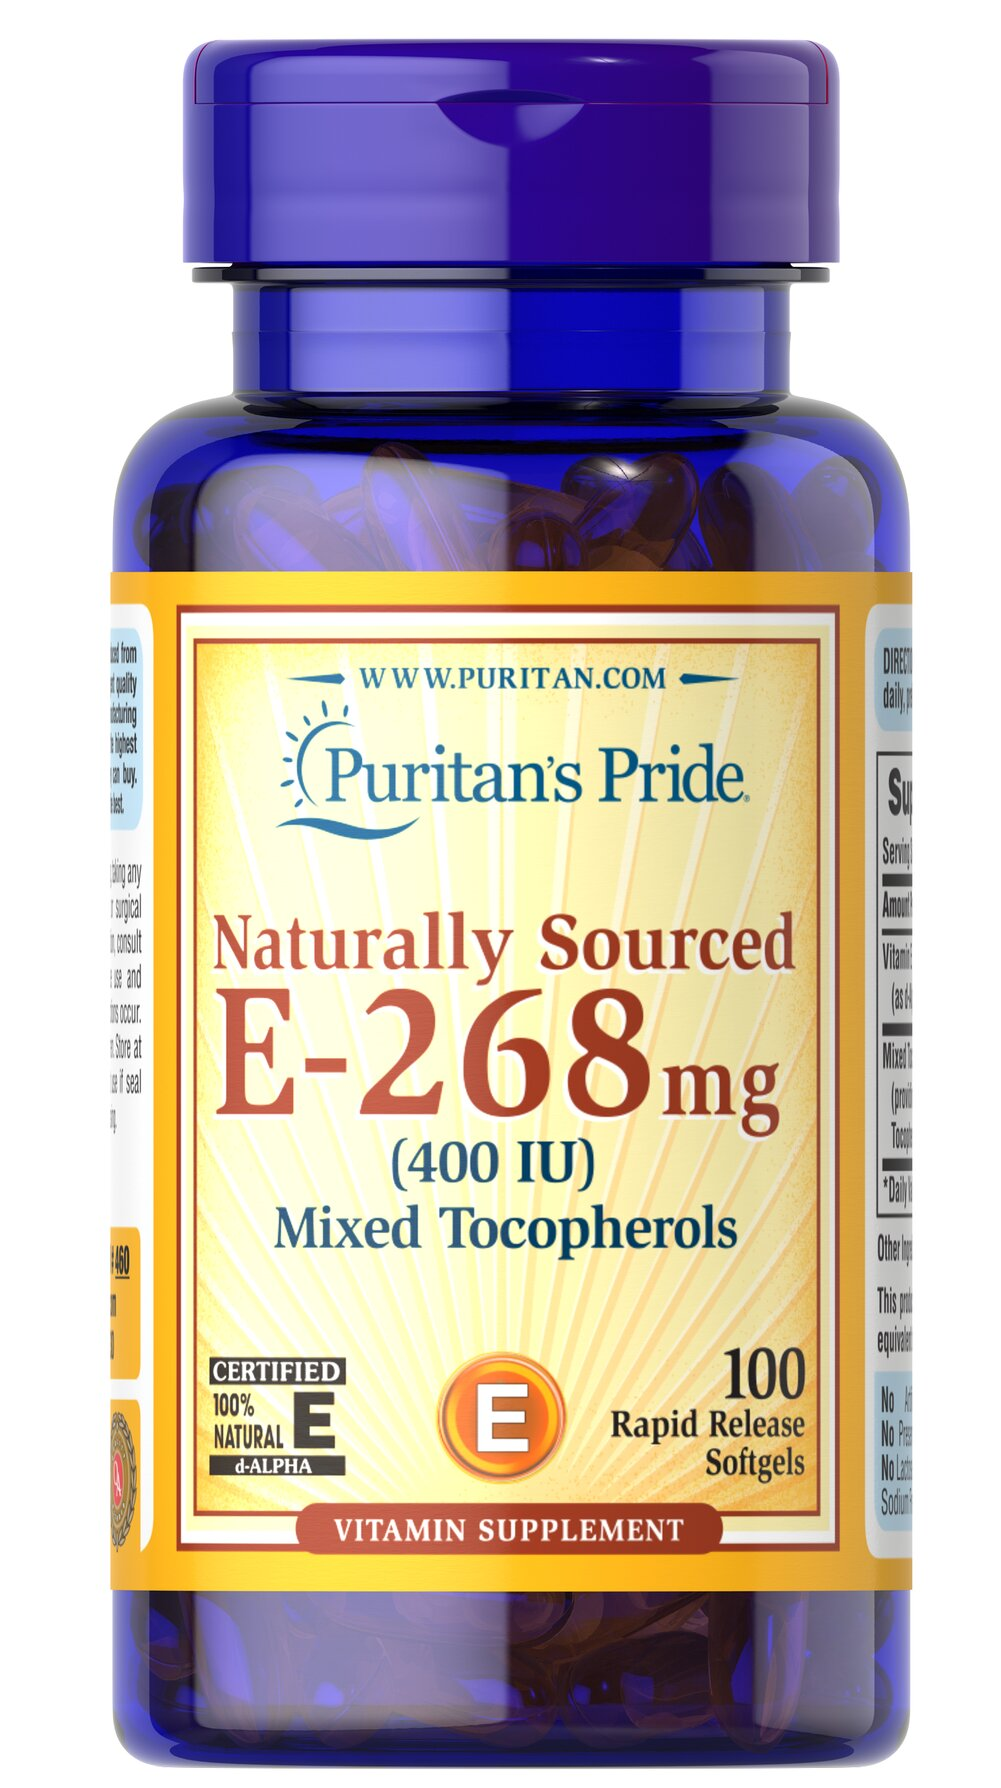 Vitamin E-400 iu Mixed Tocopherols Natural <p><strong>Vitamin E</strong> promotes immune function and helps support cardiovascular health.** Vitamin E is also a powerful <strong>antioxidant</strong> that helps fight cell-damaging free radicals in the body.** Studies have shown that oxidative stress caused by free radicals may contribute to the premature aging of cells.**</p> 100 Softgels 400 IU $22.99